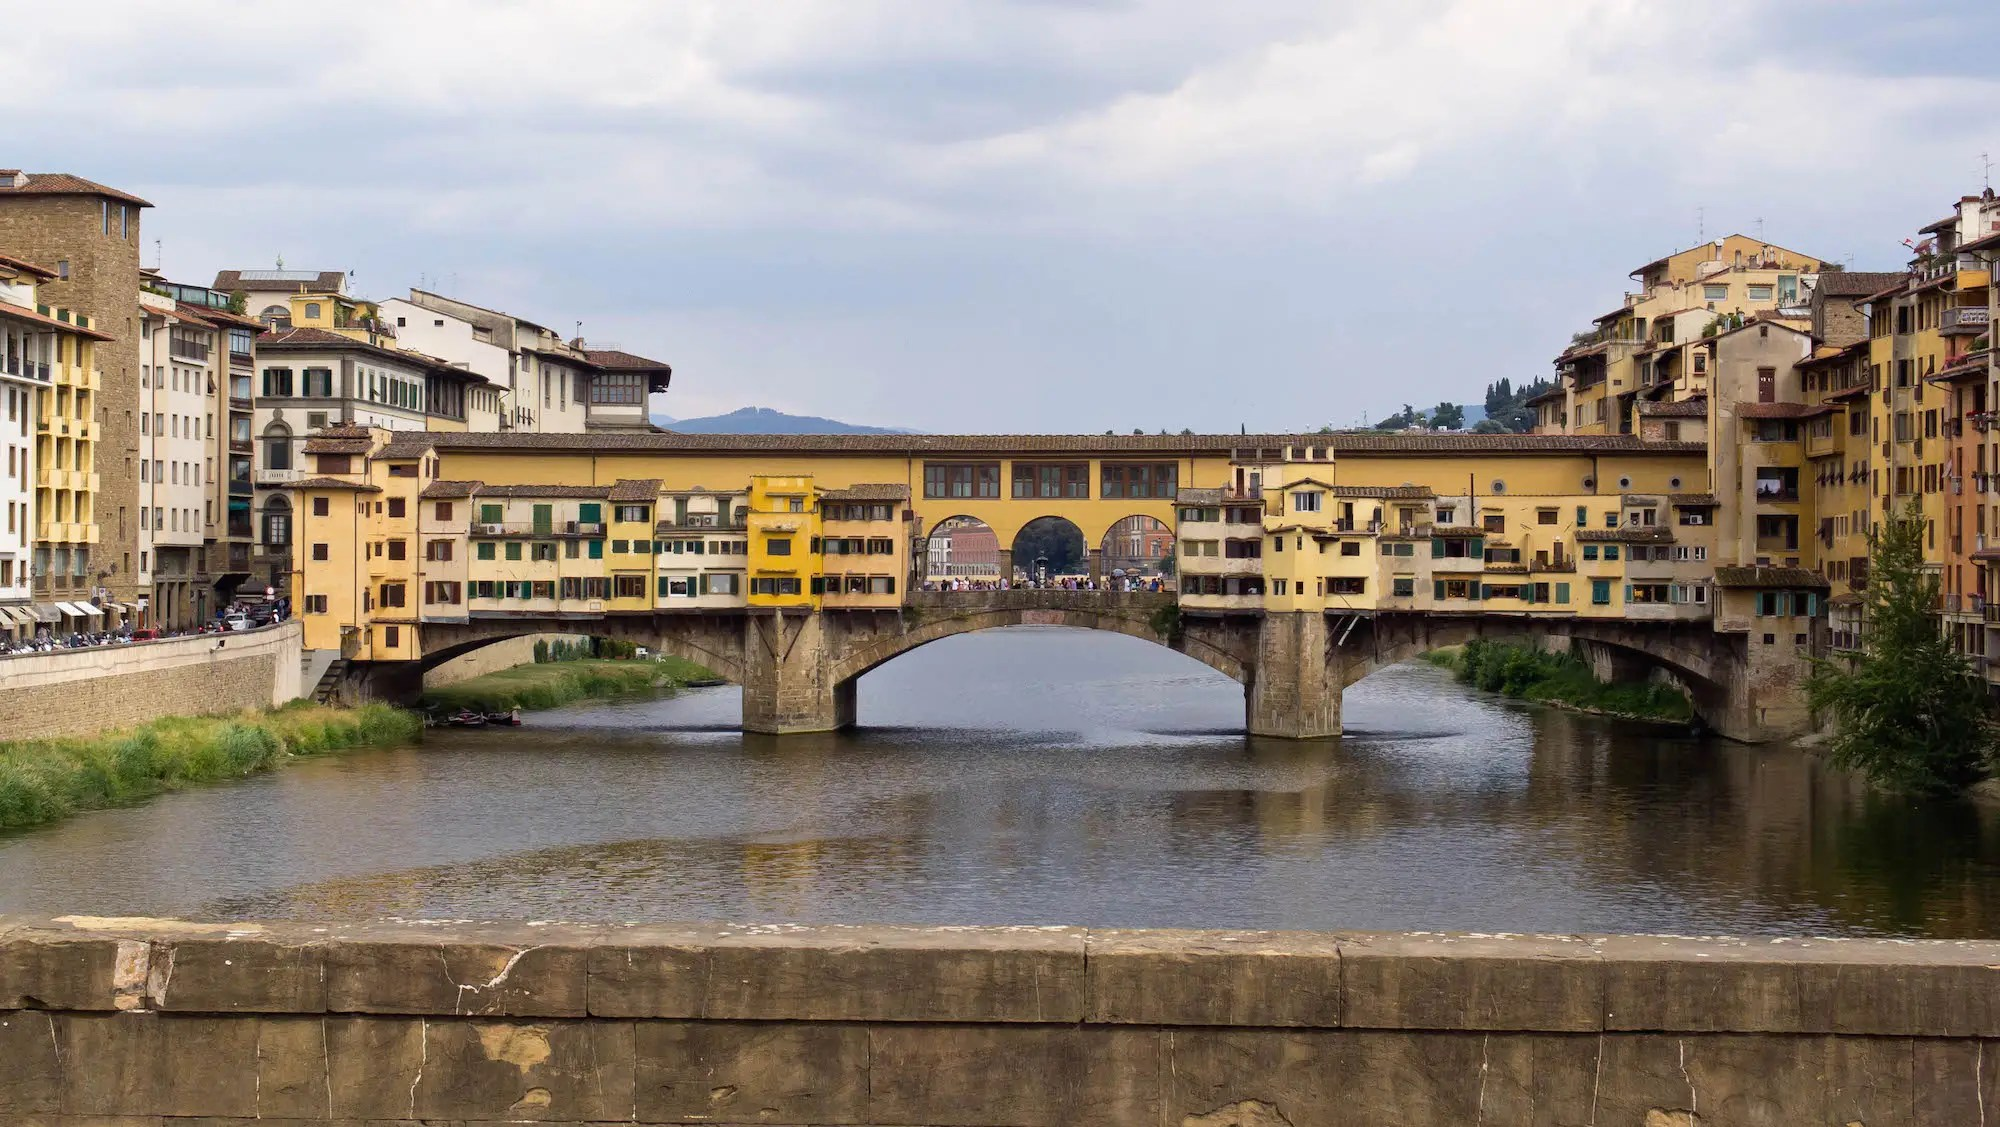 36. The shops nestled into the Ponte Vecchio arch bridge in Florence, Italy, were once home to butchers' shops, but are now occupied by souvenir-sellers.